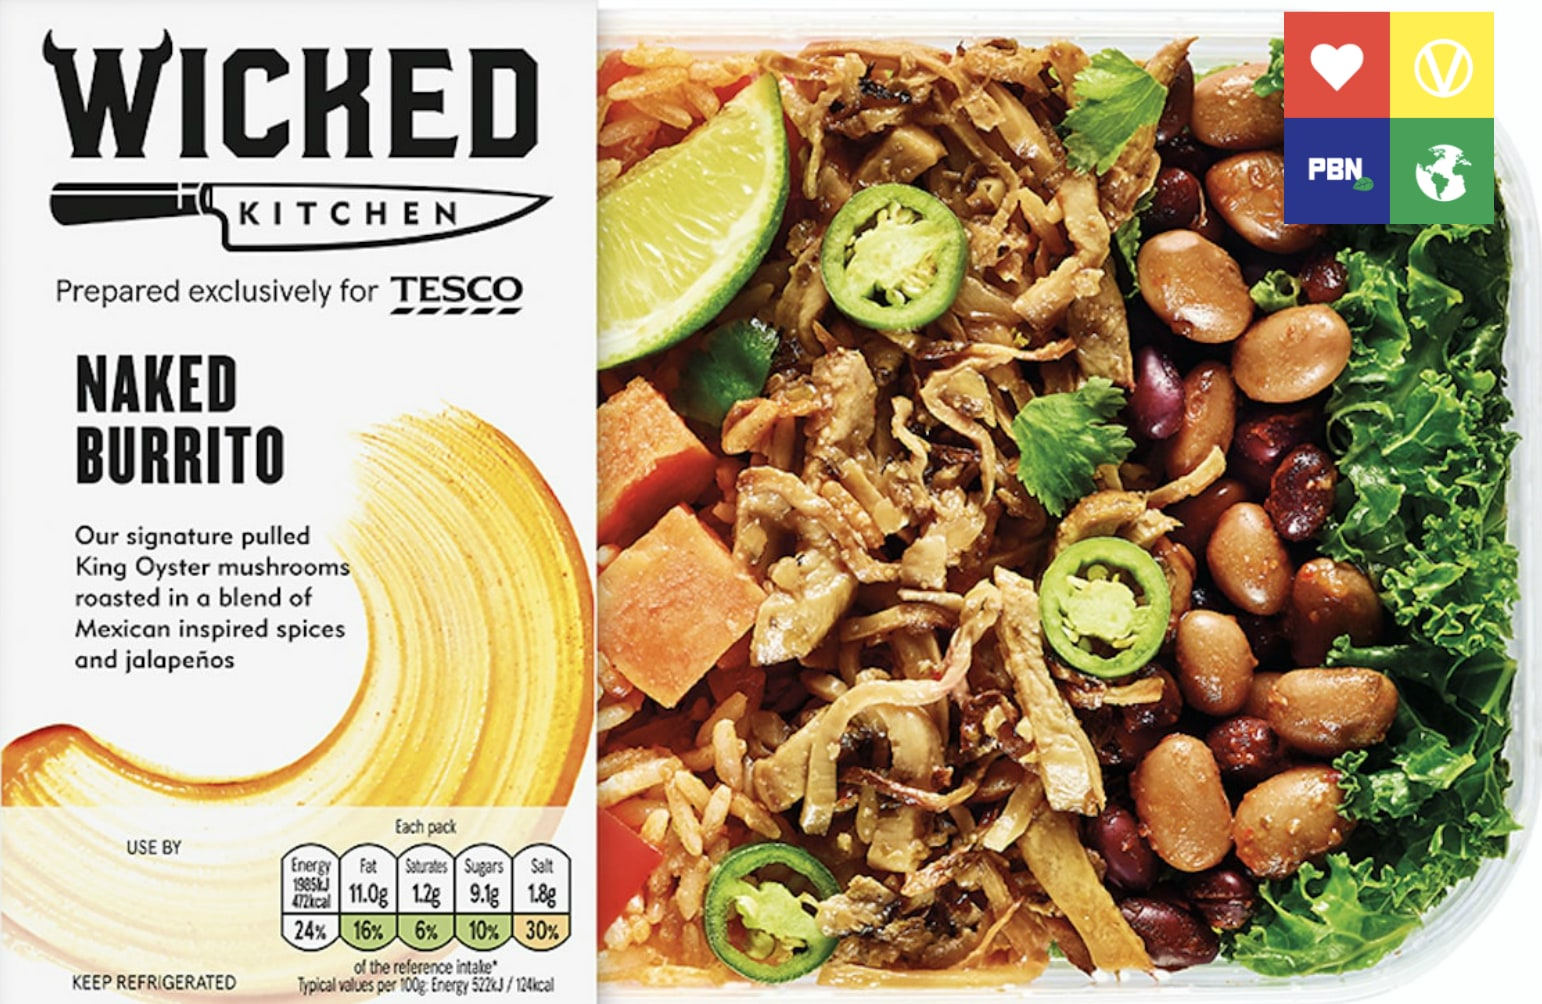 breaking tesco launches major new vegan range in 600 stores across uk - Wicked Kitchen